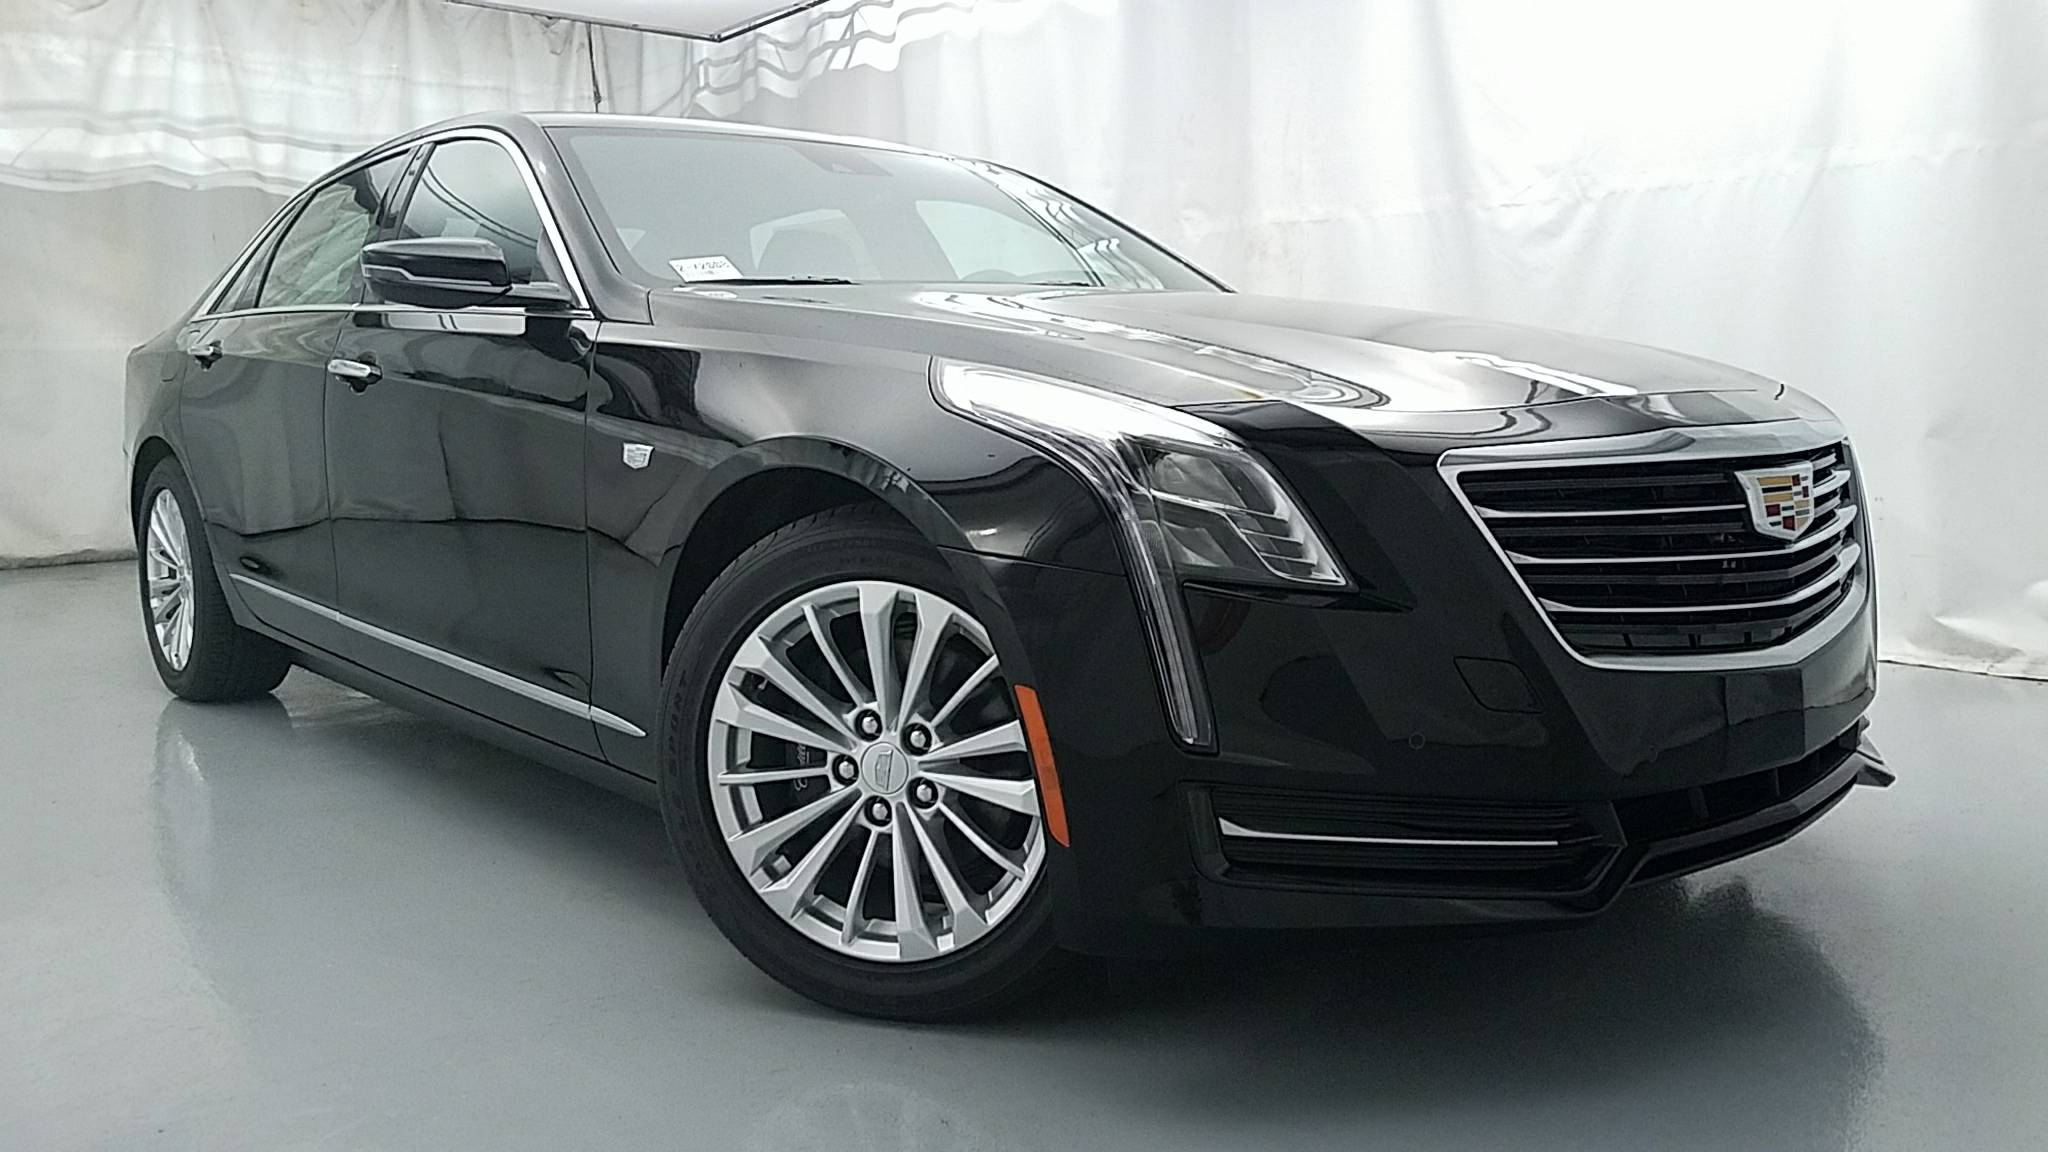 New Cadillac Cadillac Vehicles for Sale in Hammond LA Serving New